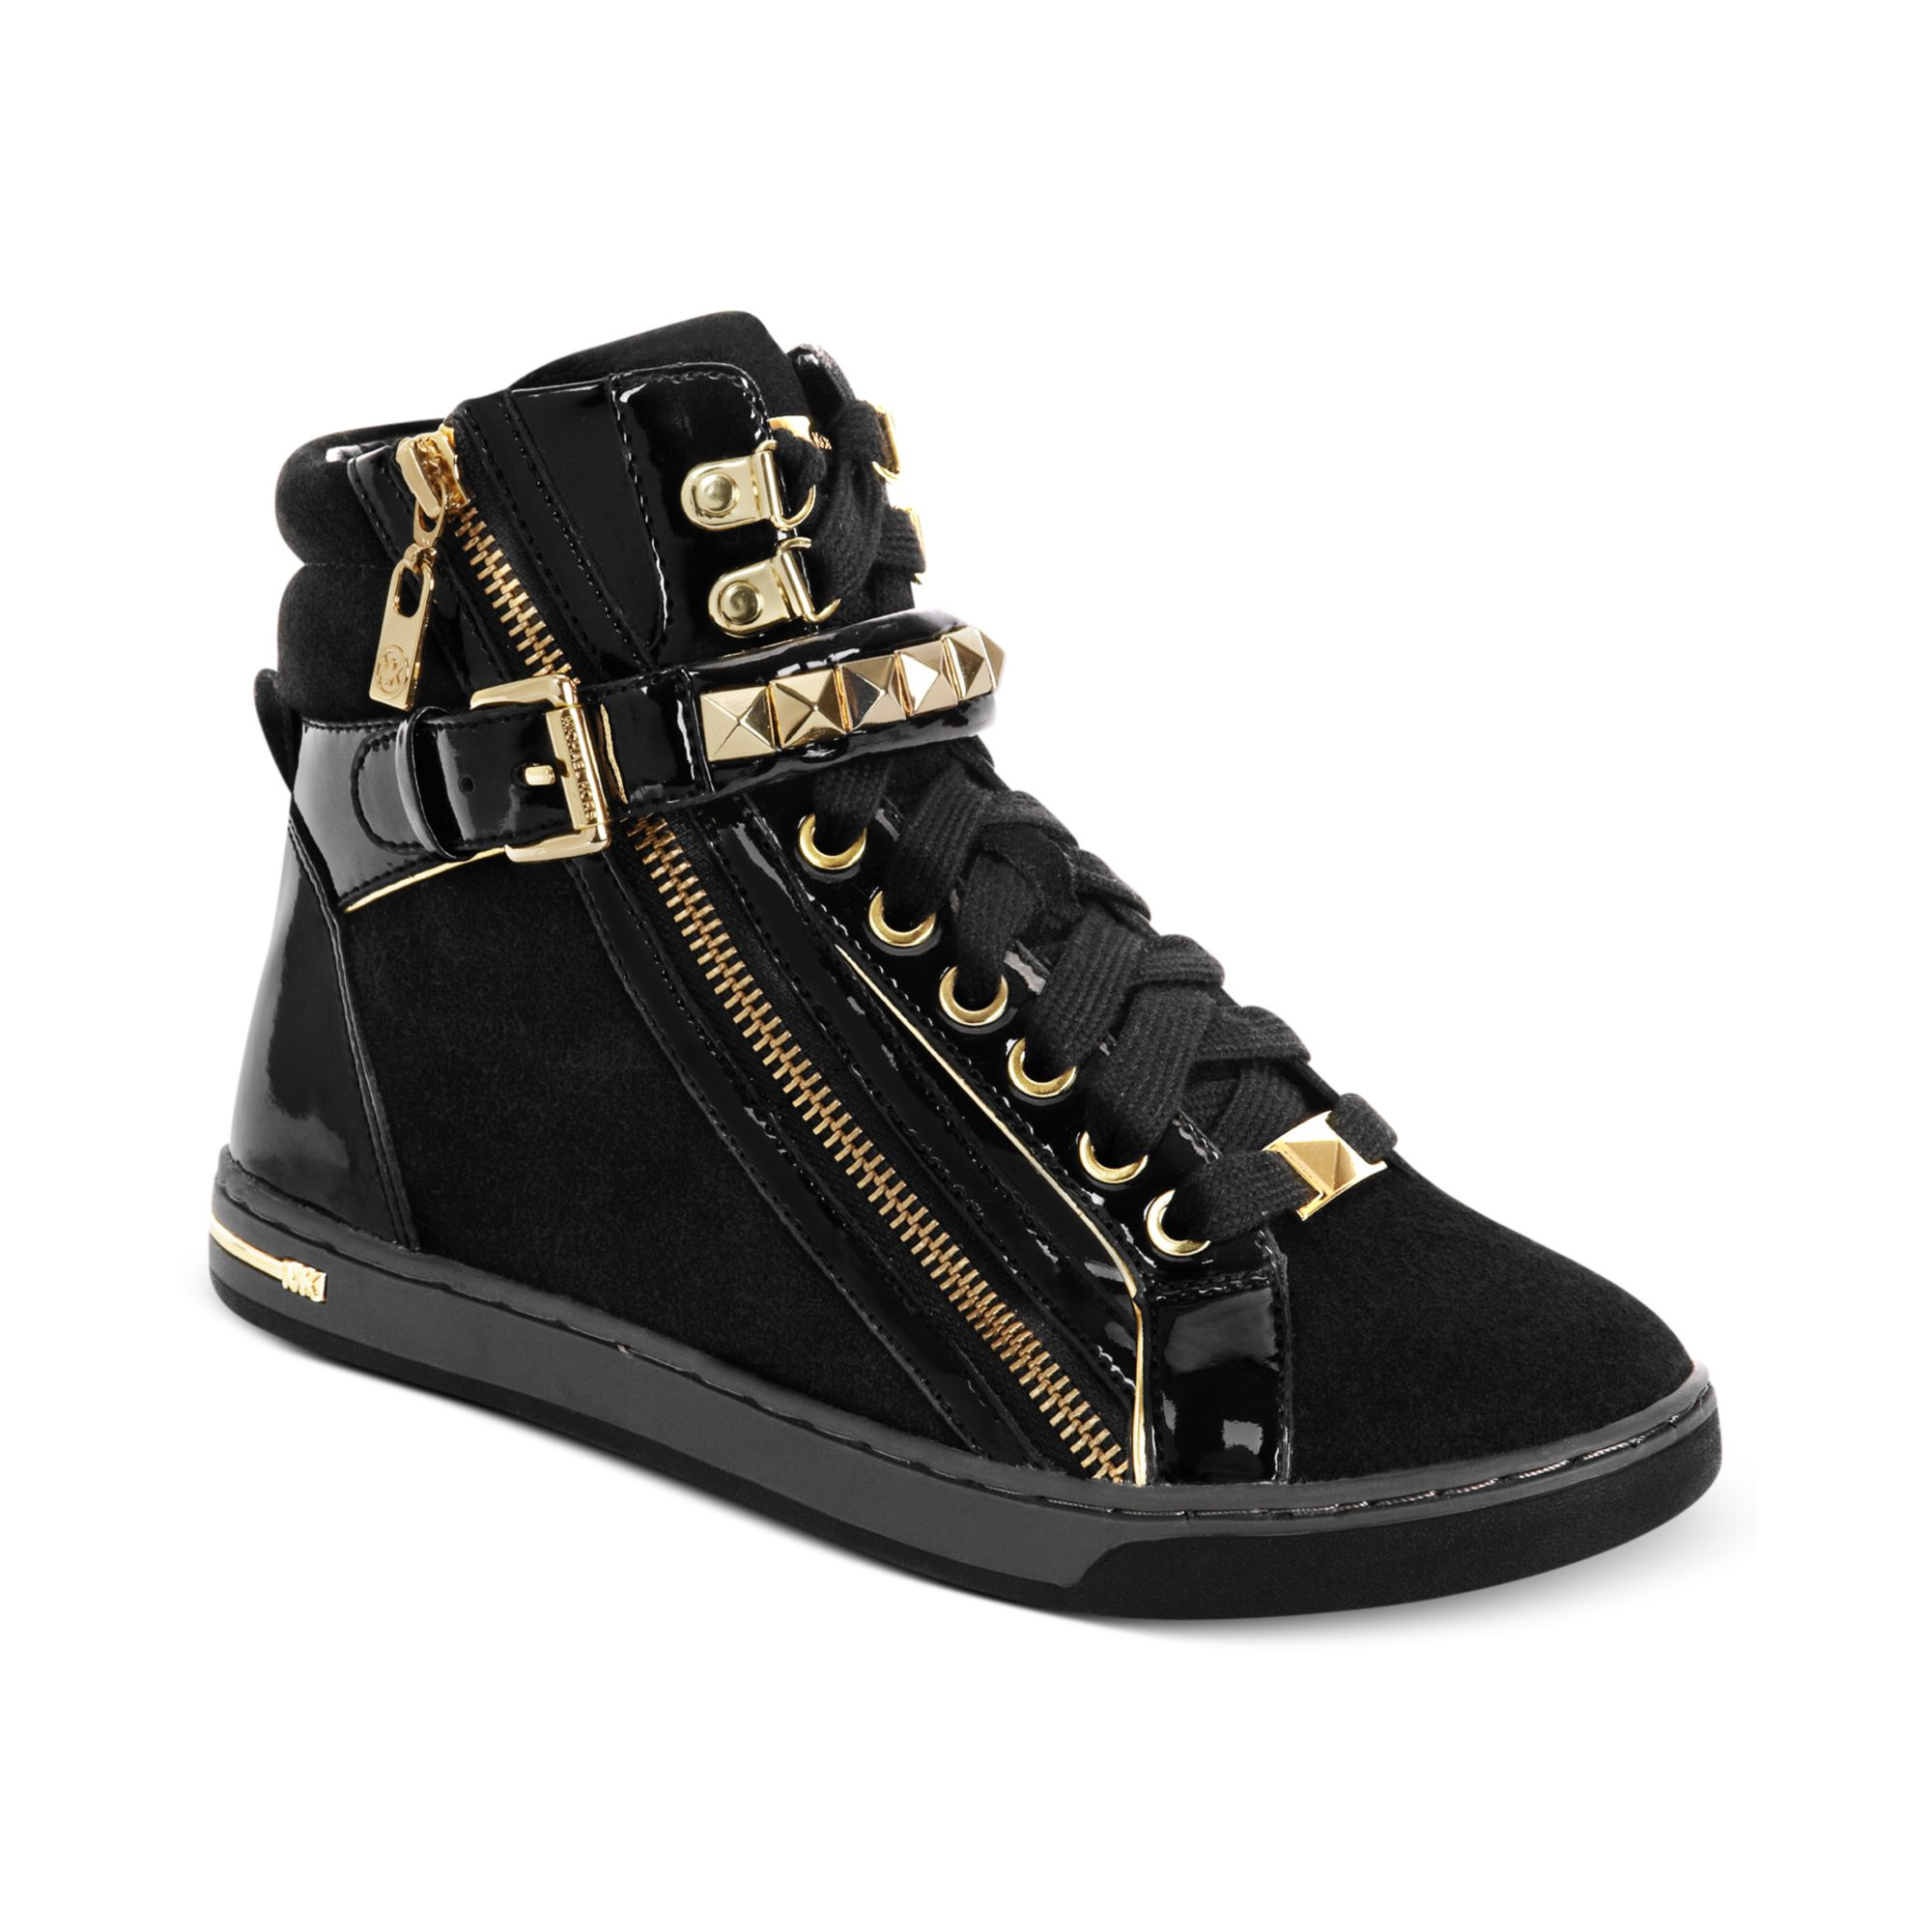 michael kors michael glam studded high top sneakers in gold black suede lyst. Black Bedroom Furniture Sets. Home Design Ideas